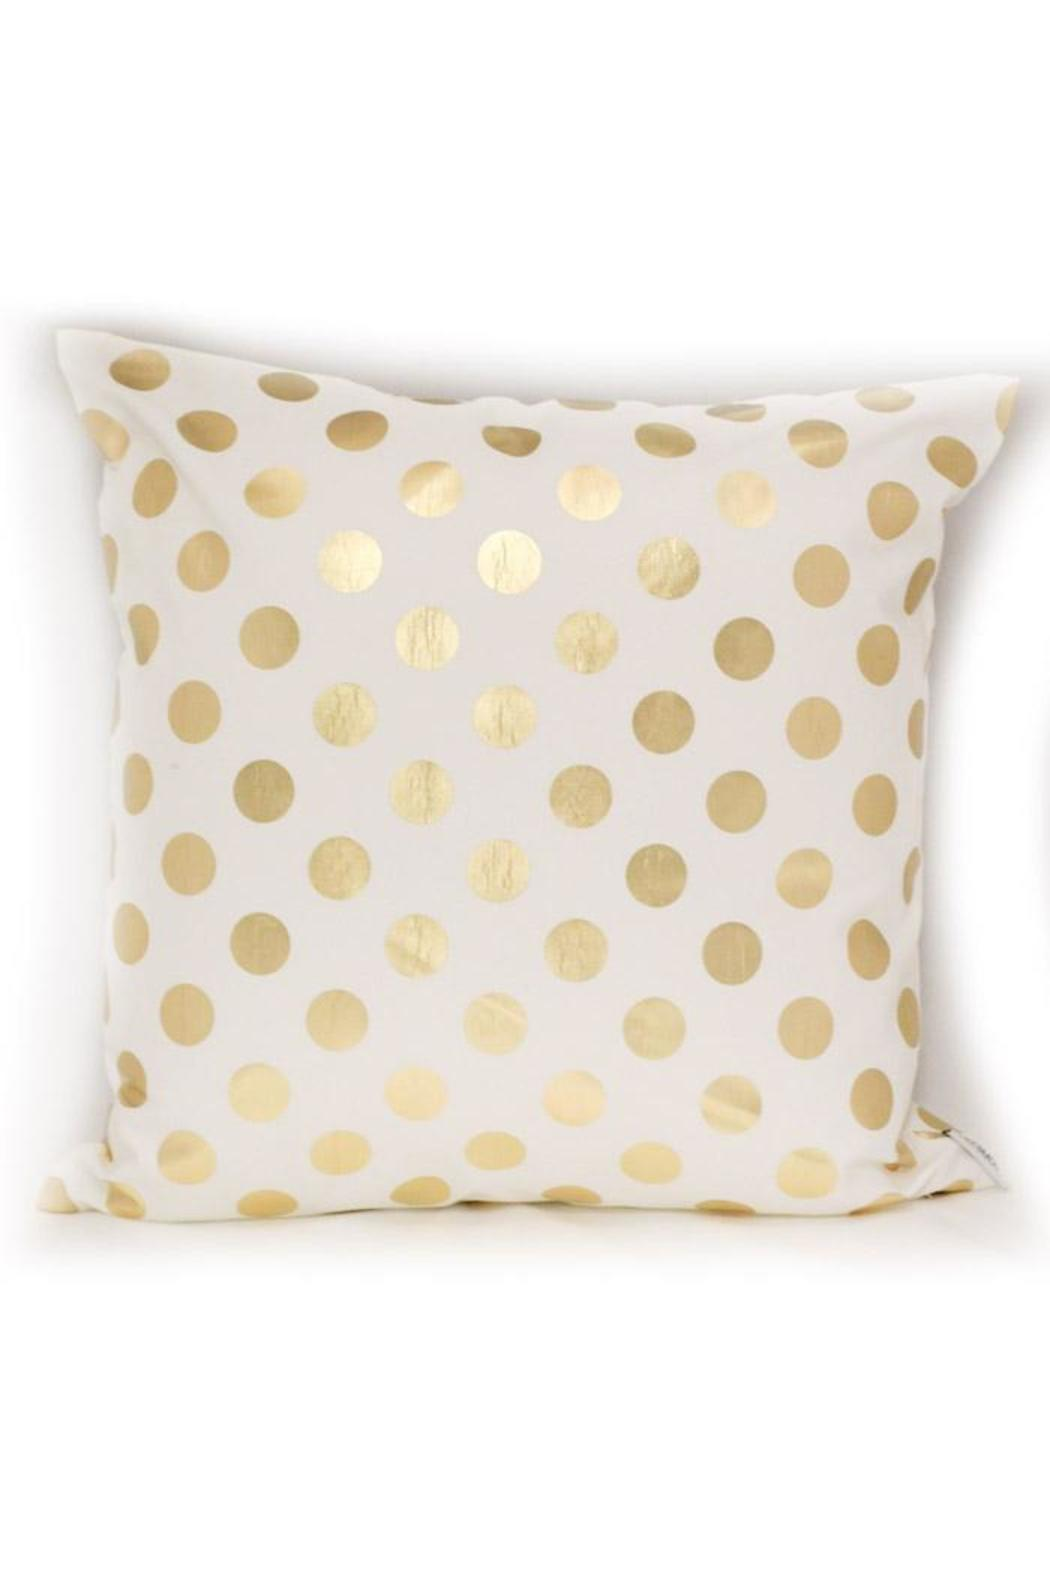 Urban Sassafras Gold Accent Pillow from Illinois by urban